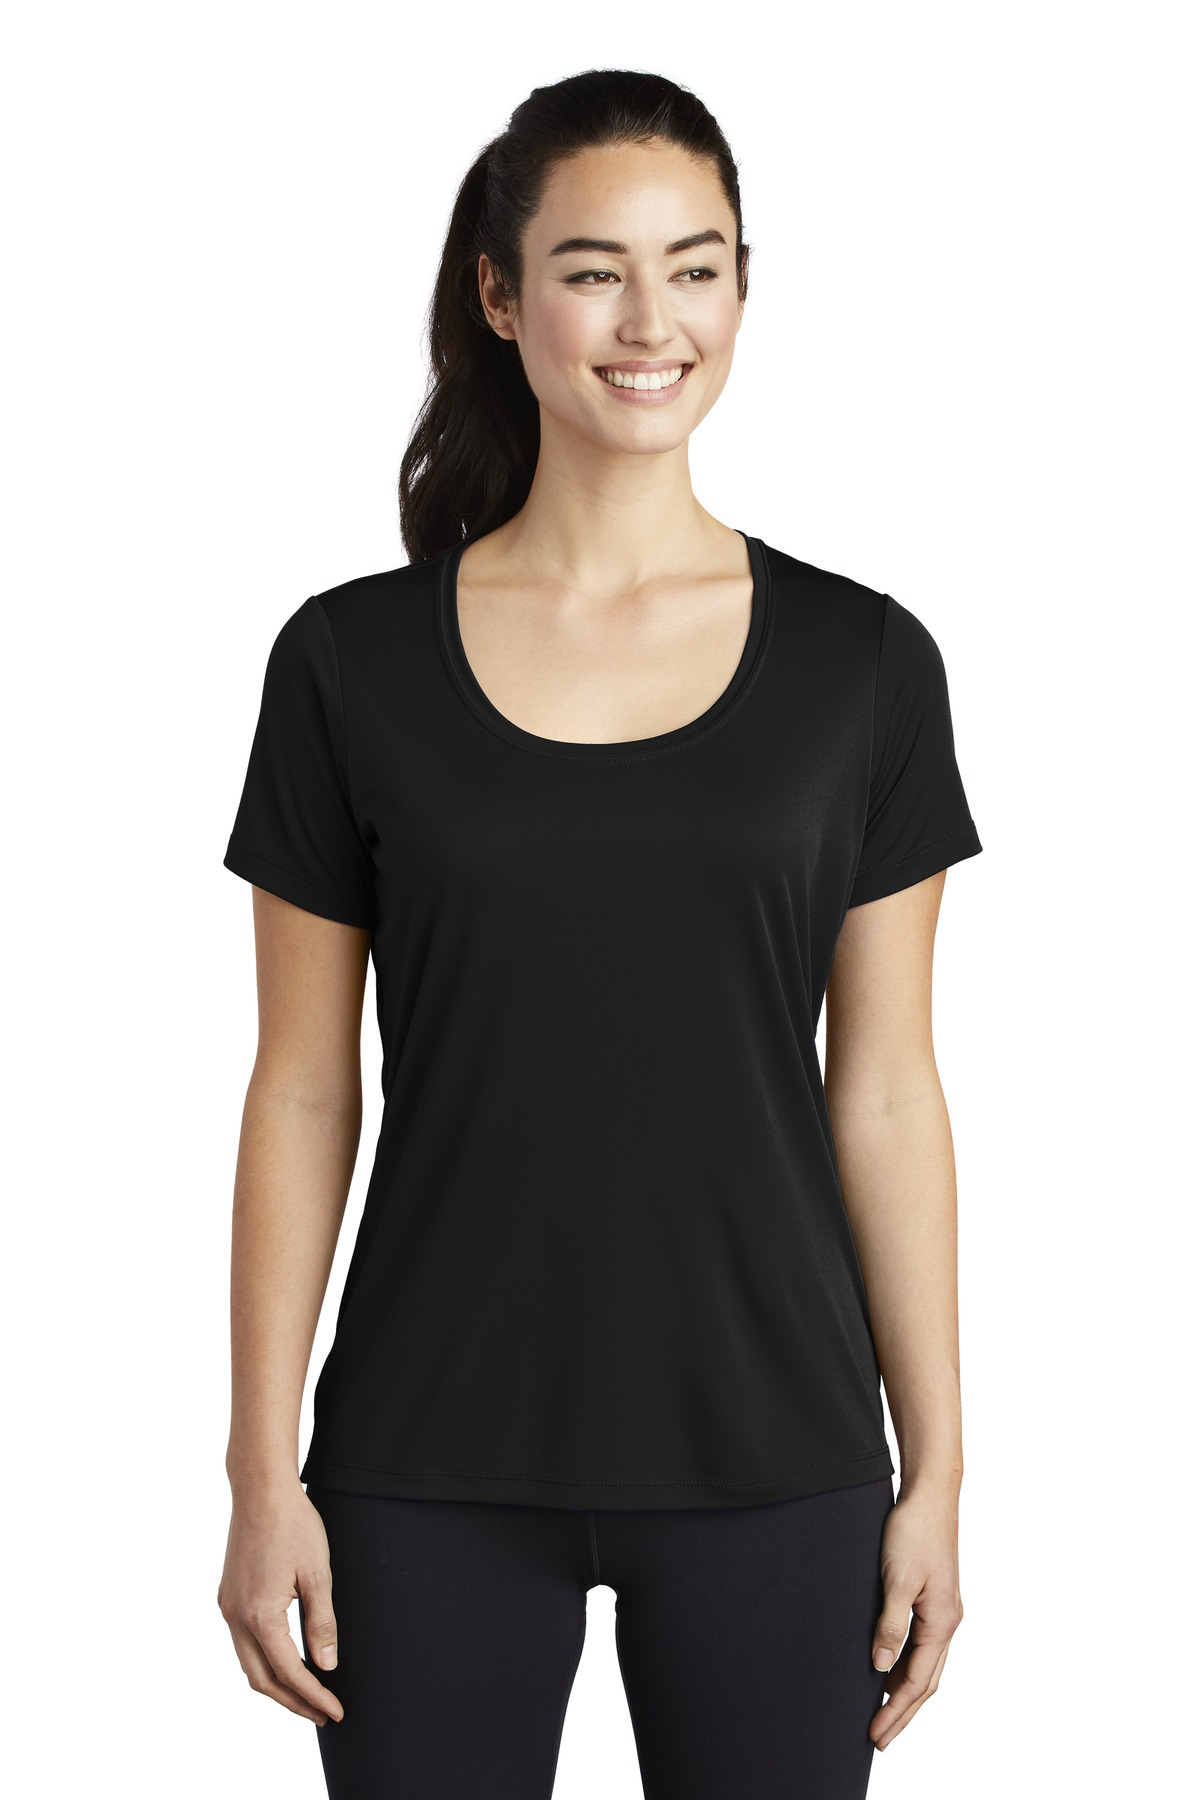 Sport-Tek  ®  Ladies Posi-UV ™  Pro Scoop Neck Tee. LST420 - Black